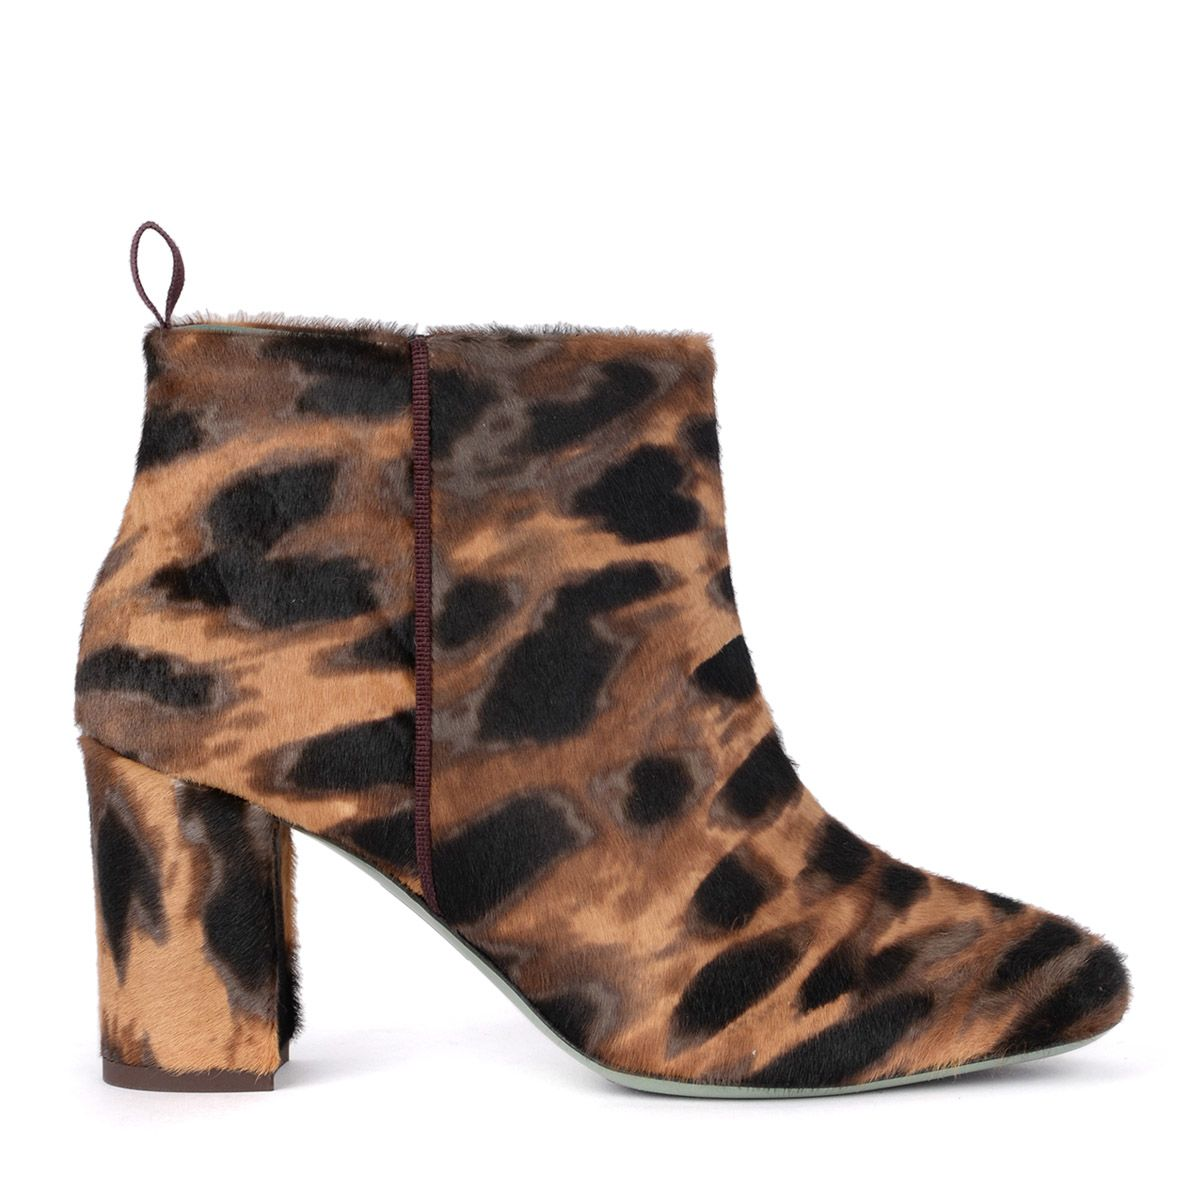 PAOLA D'ARCANO Paola D'Arcano Spotted Cow Hair Effect Leather Ankle Boots in Animalier